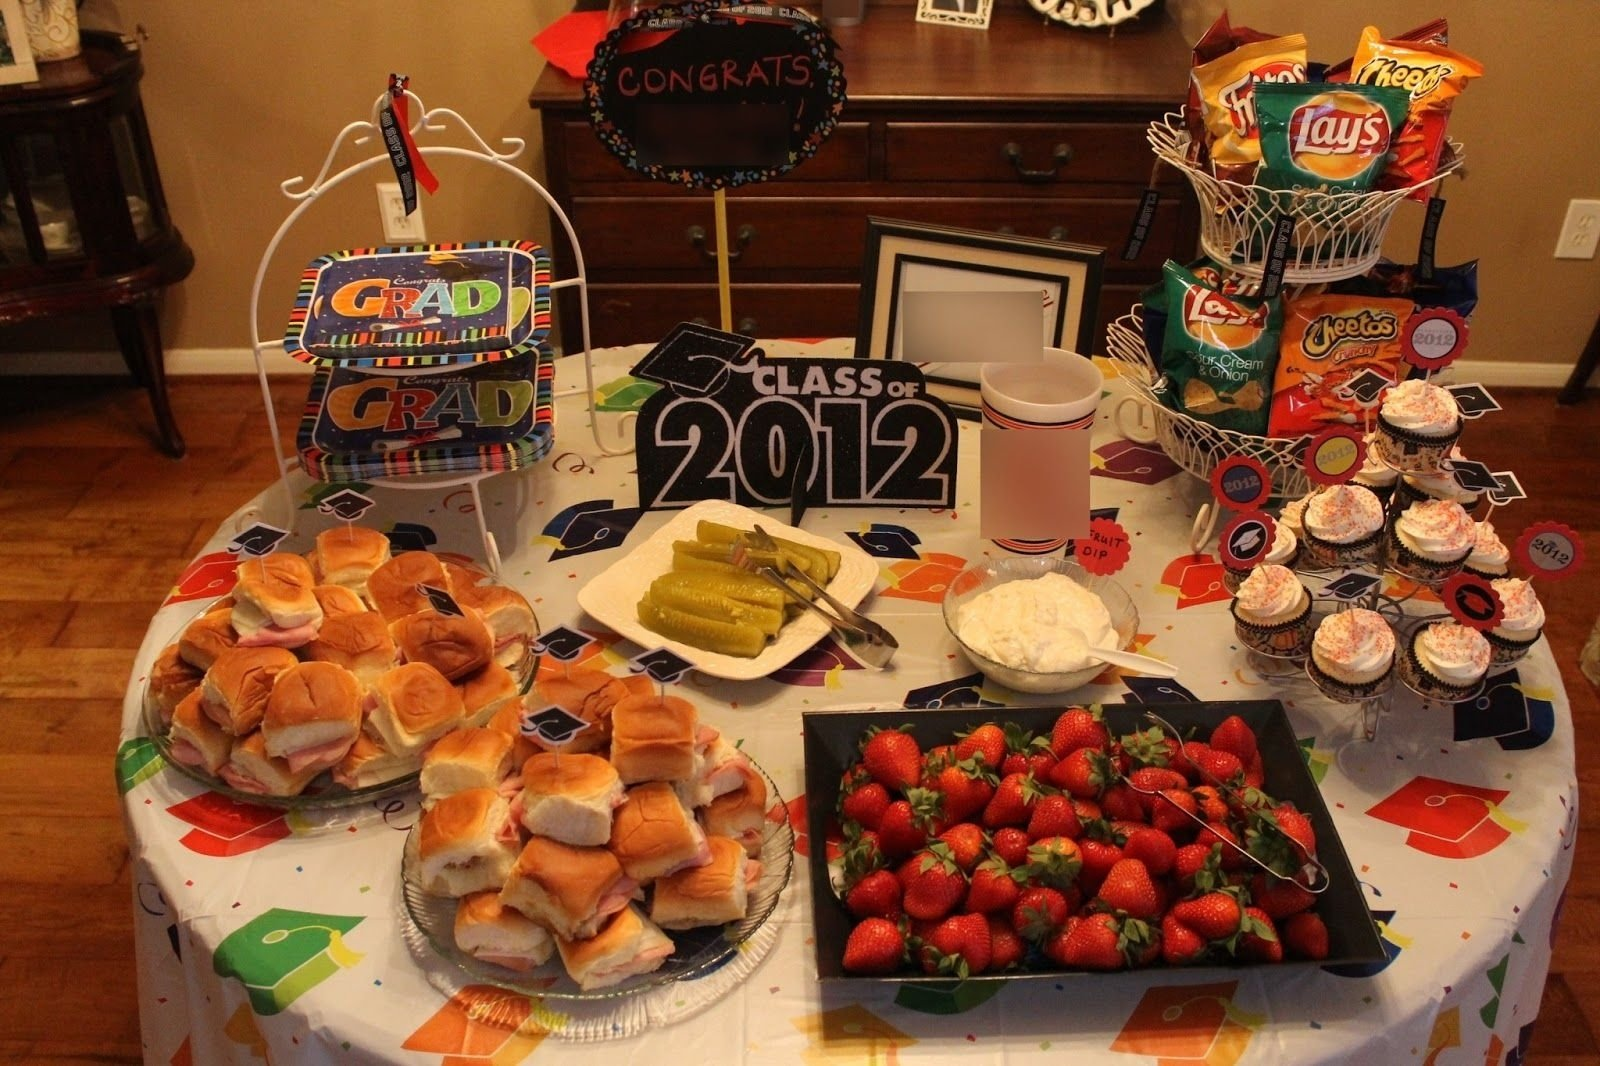 10 Elegant Ideas For Graduation Party Food graduation decoration ideas this is just a simple banner i 2 2021